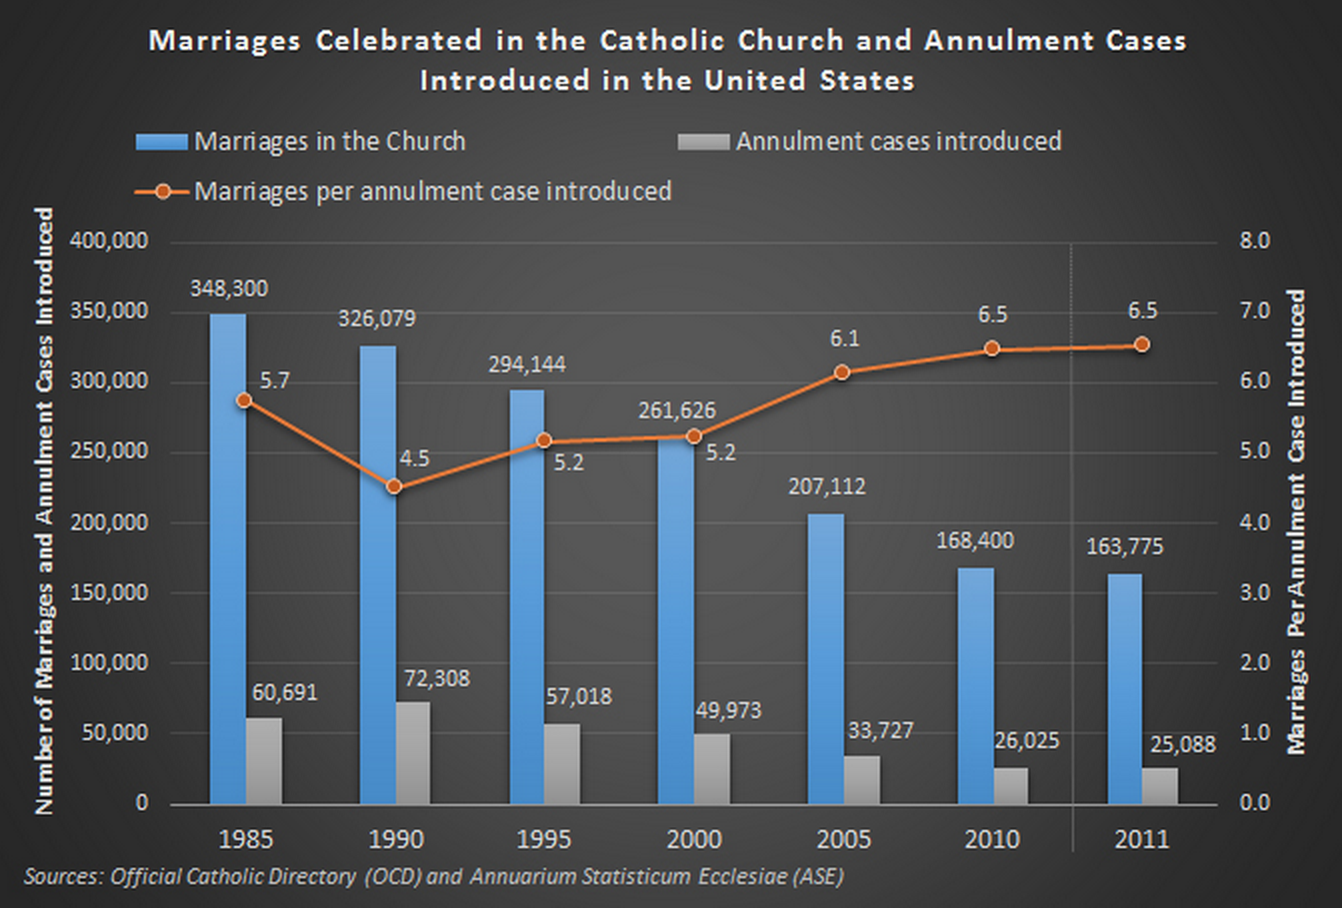 Source: Center for Applied Research in the Apostolate  blog